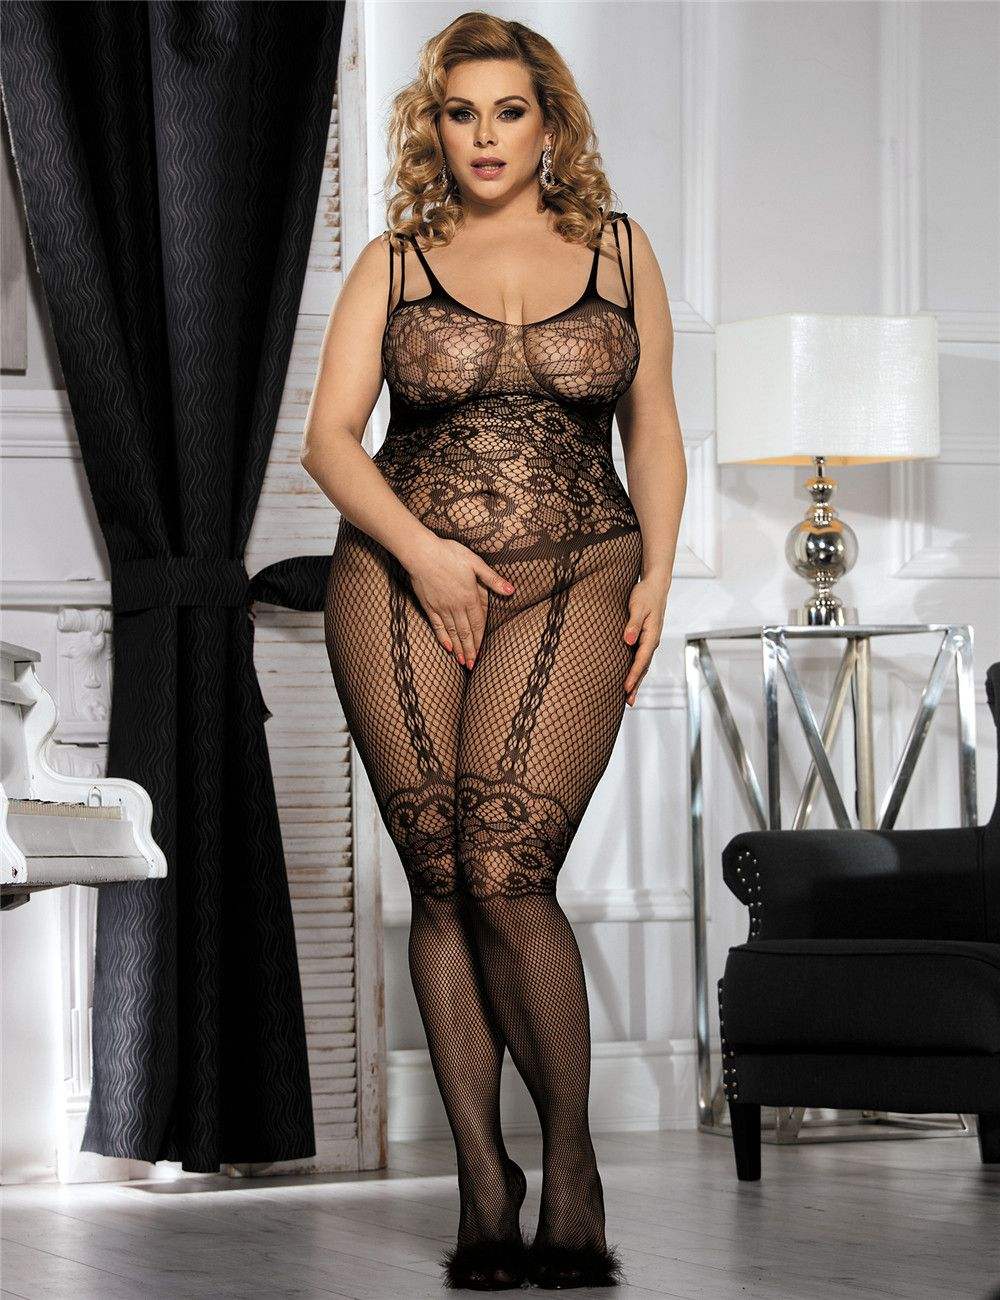 Find a great selection of plus size clothing at skytmeg.cf Shop dresses, jeans, tops and more in the latest fashions and trends for plus size clothing. Free shipping and returns.